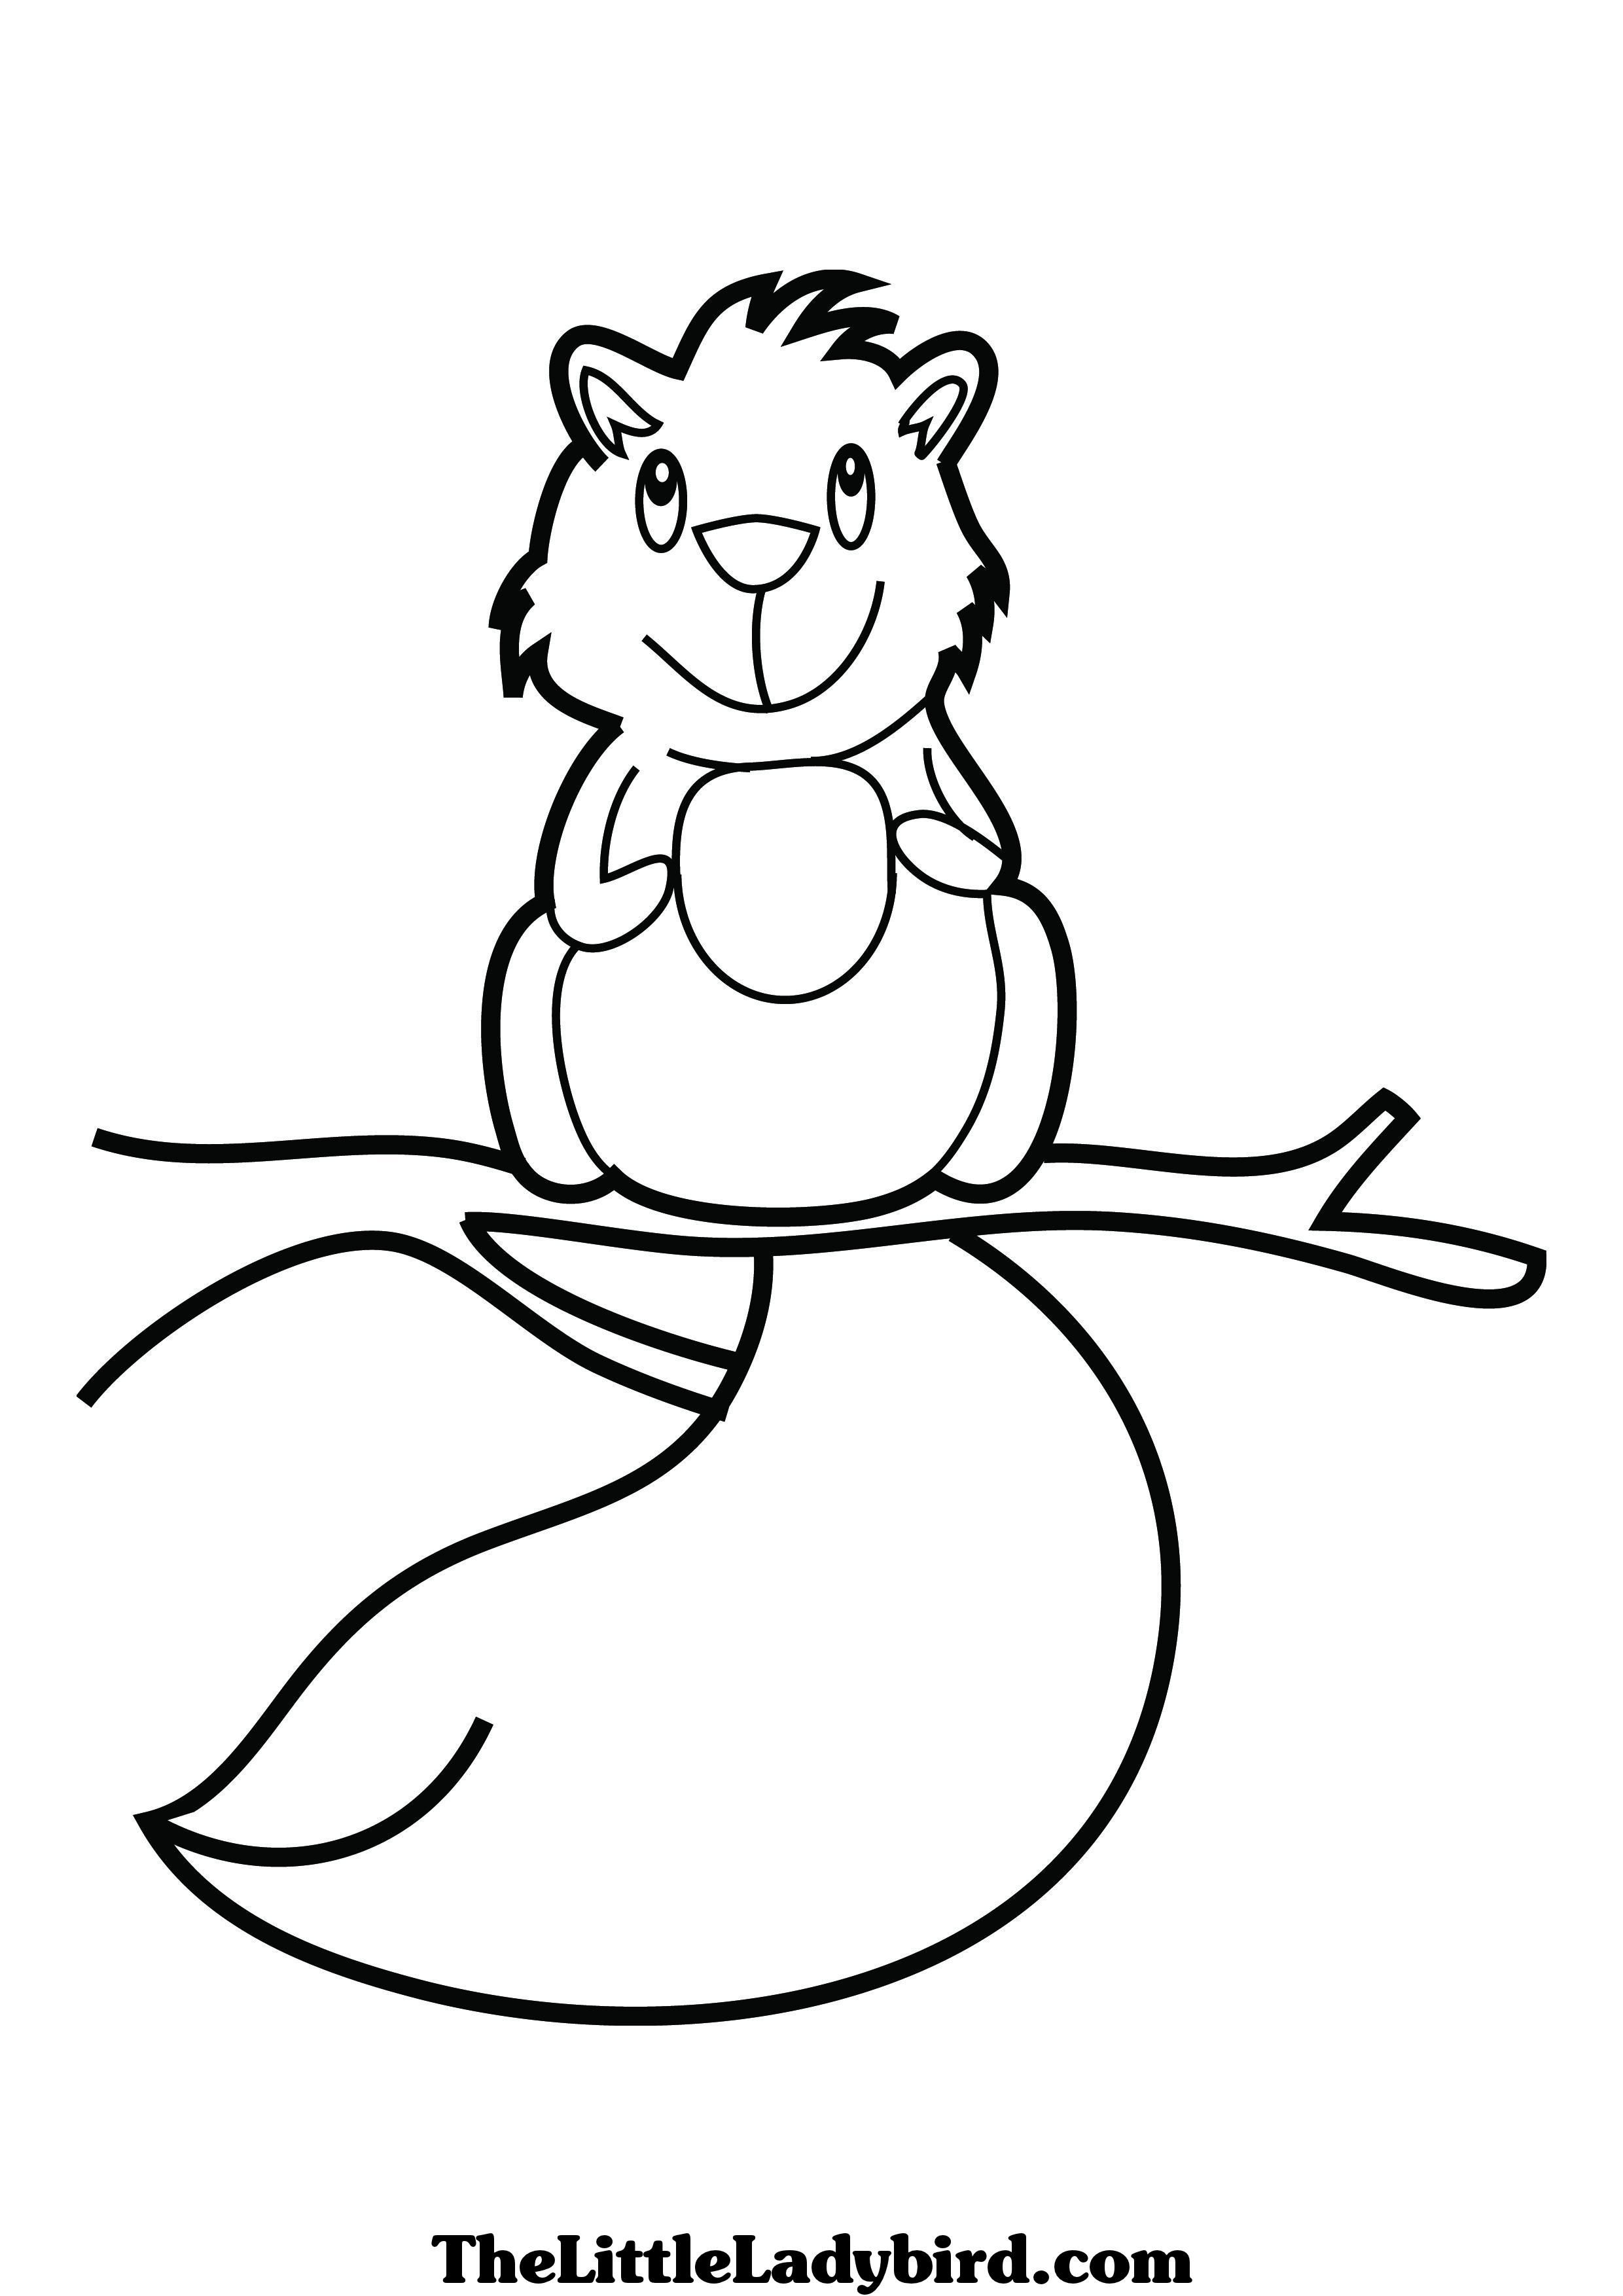 squirrel coloring pages - Google Search | Animals | Pinterest | Squirrel